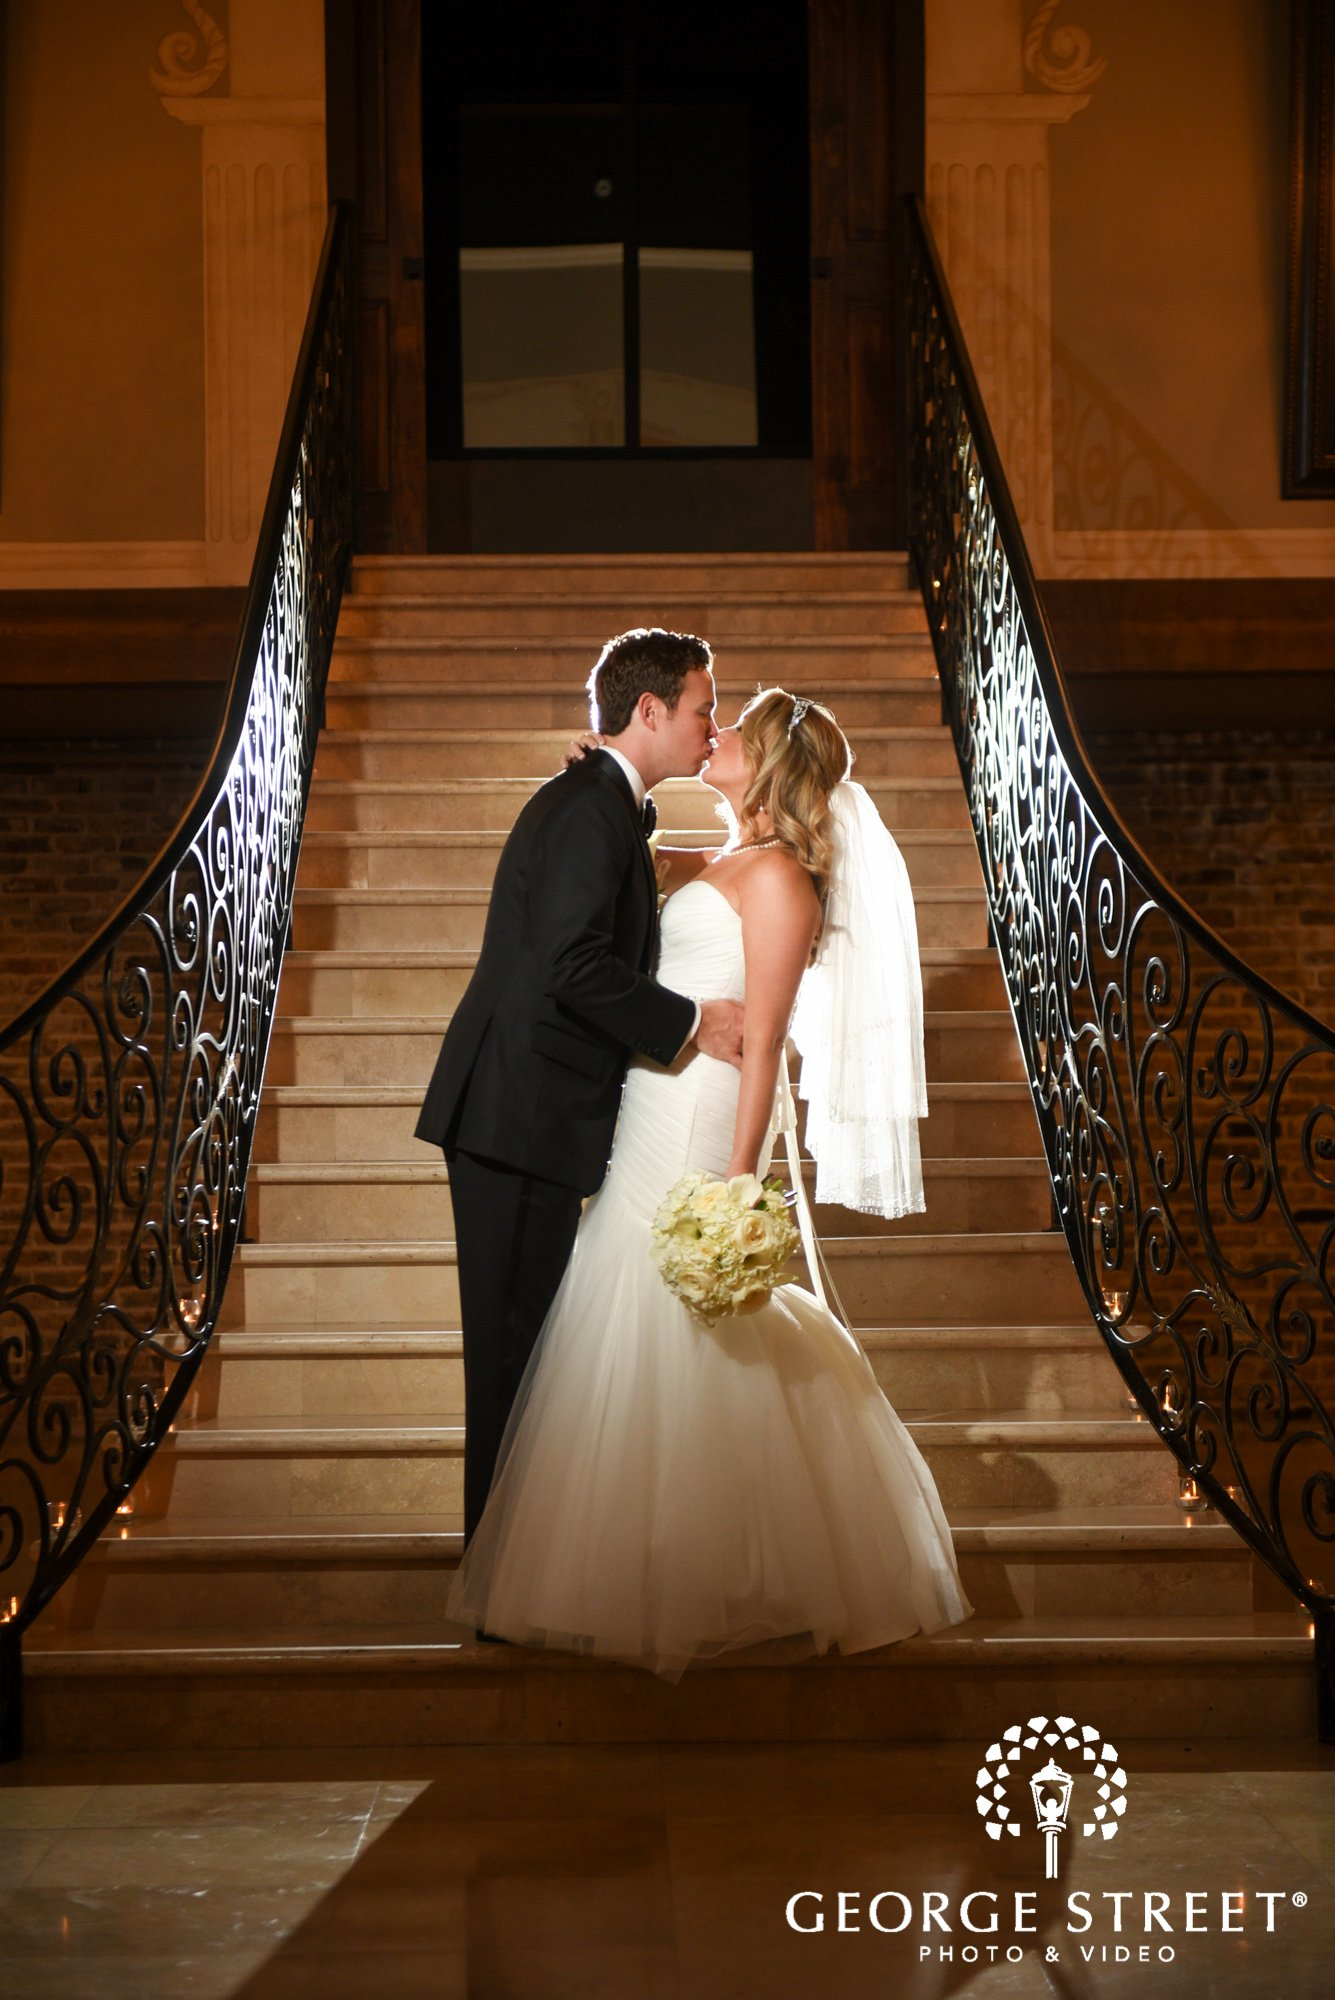 the bell tower on 34th bride and groom wedding photos 6